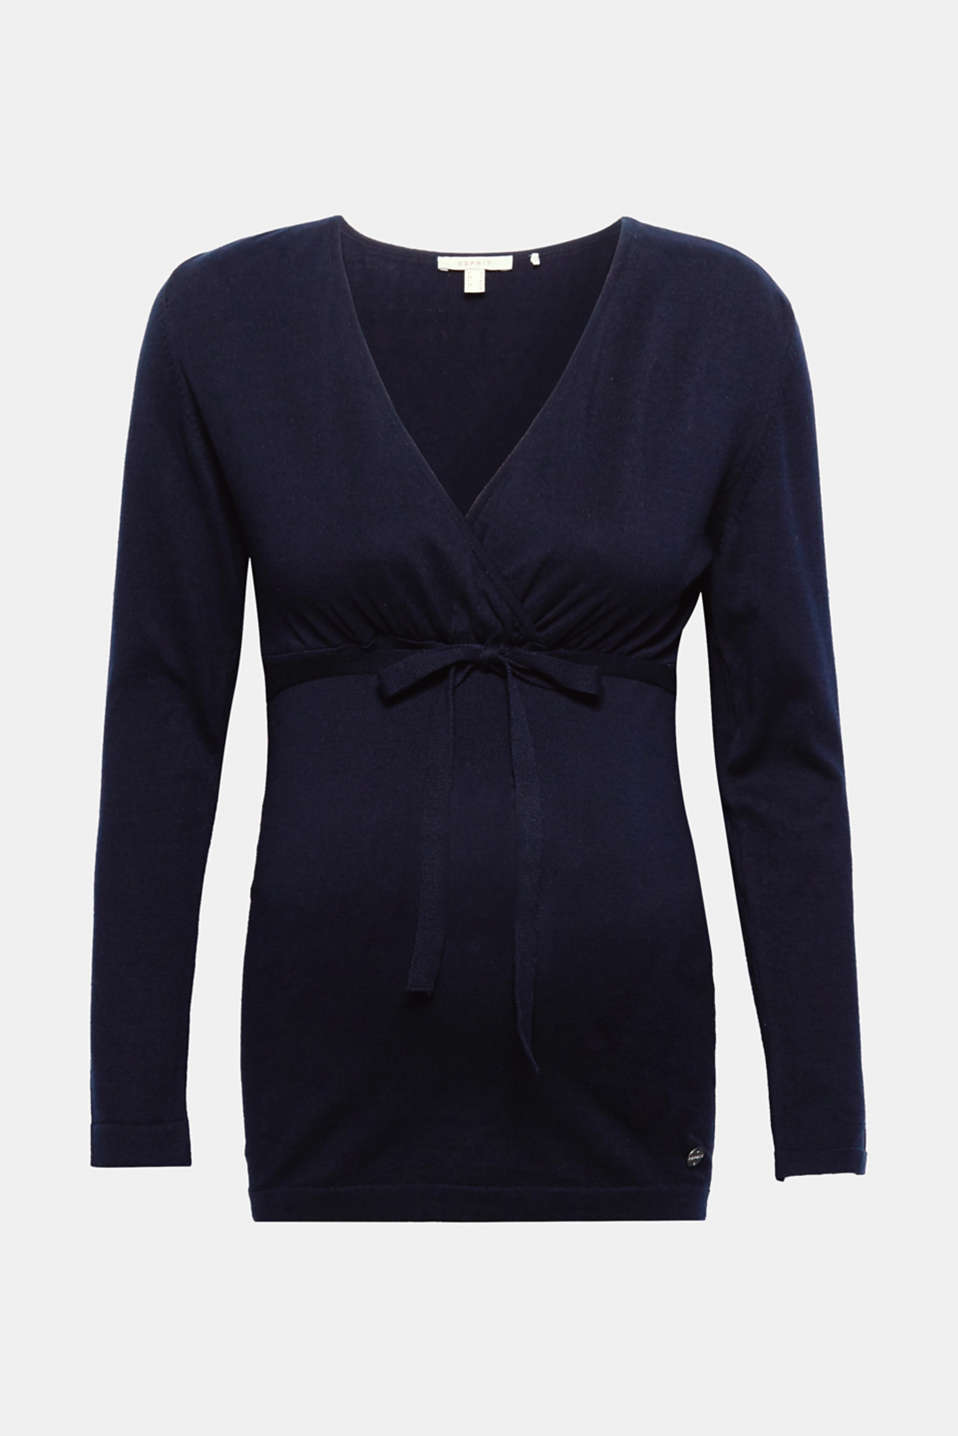 This lightweight jumper with a wrap-over effect and tie-around belt complements denim or nautical looks!